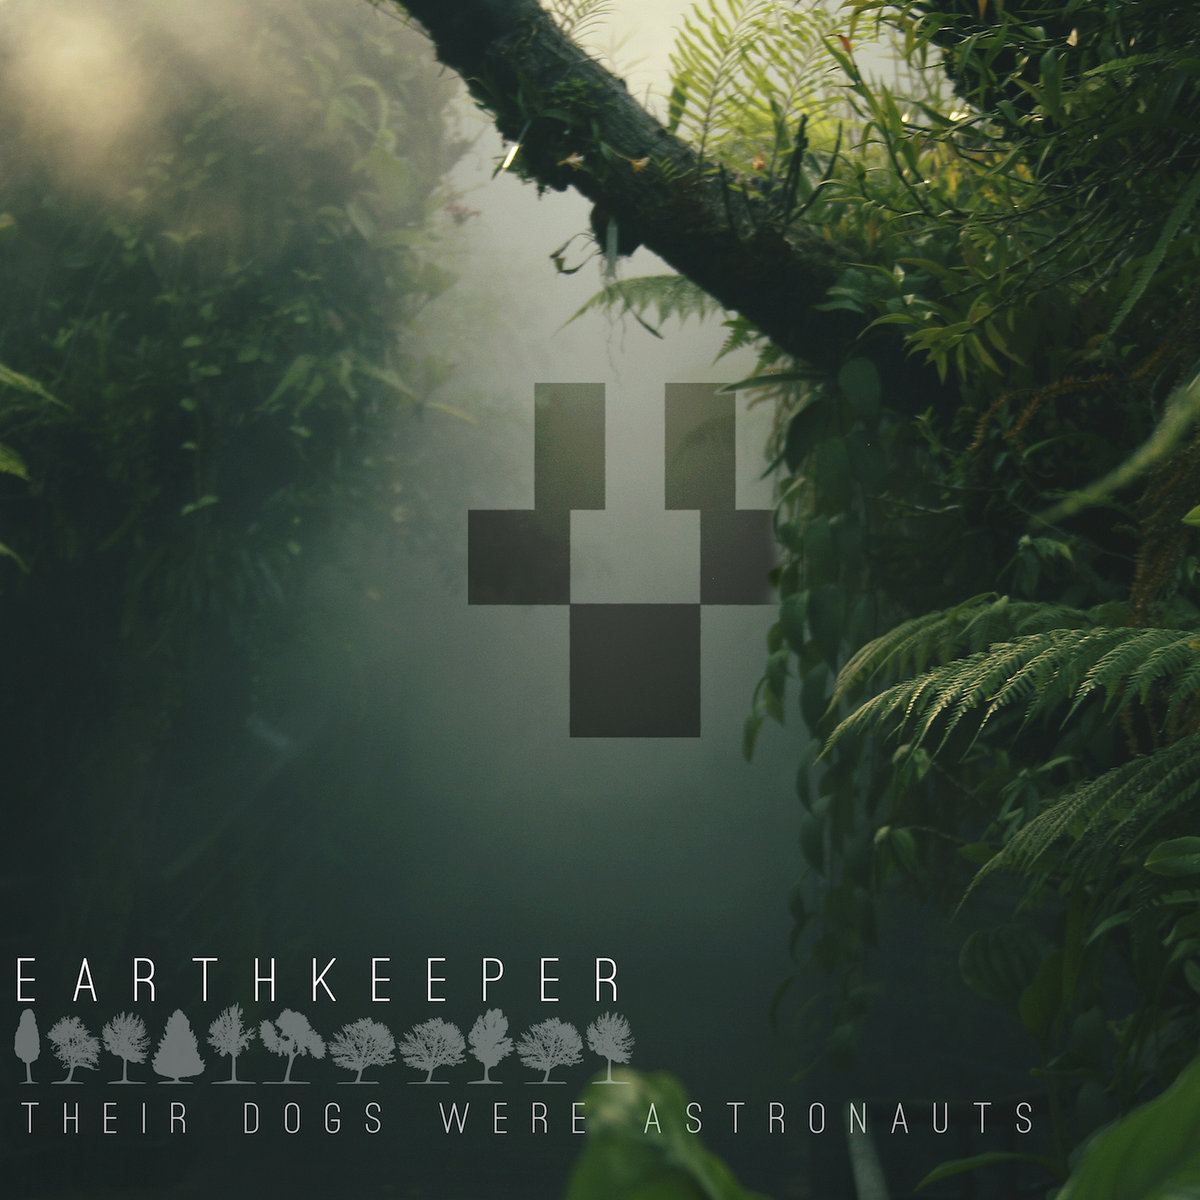 Their Dogs Were Astronauts - Paradigm @ 'Earthkeeper' album (instrumental metal, metal)